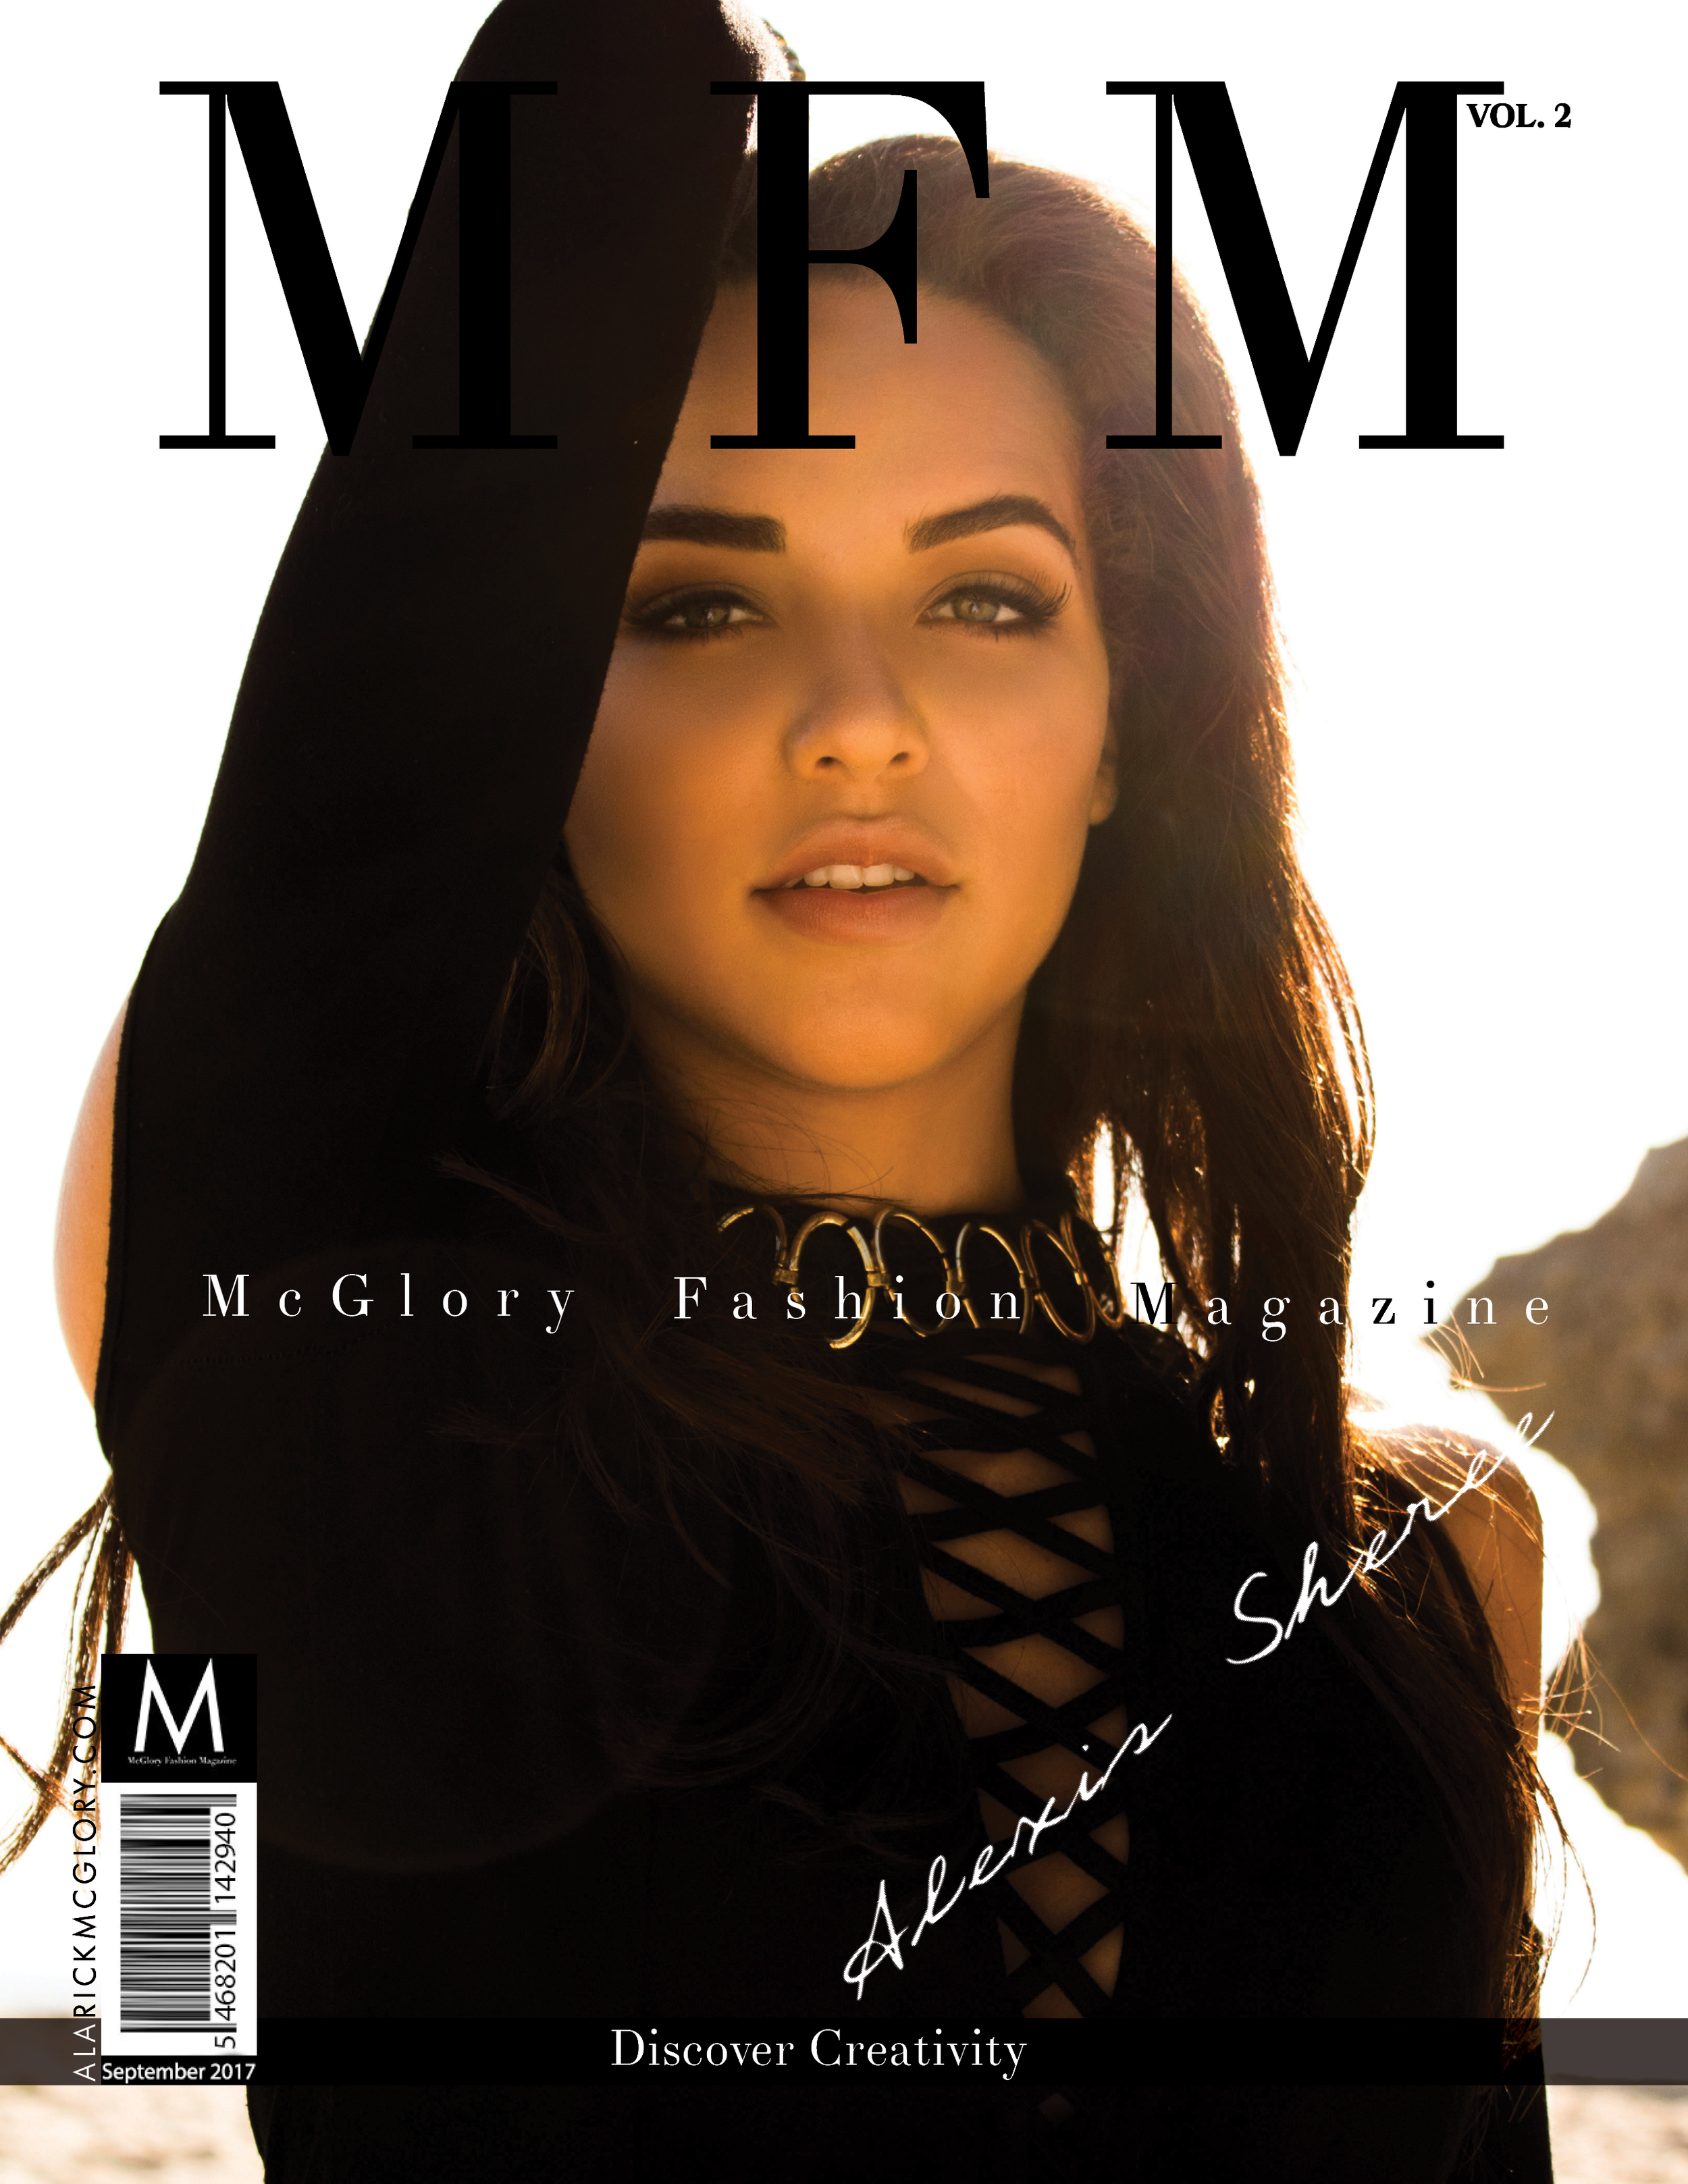 MFM first issue 6-edited 106 Part 2 space 2-2-2-2 PDF VOL 2 new new new.png